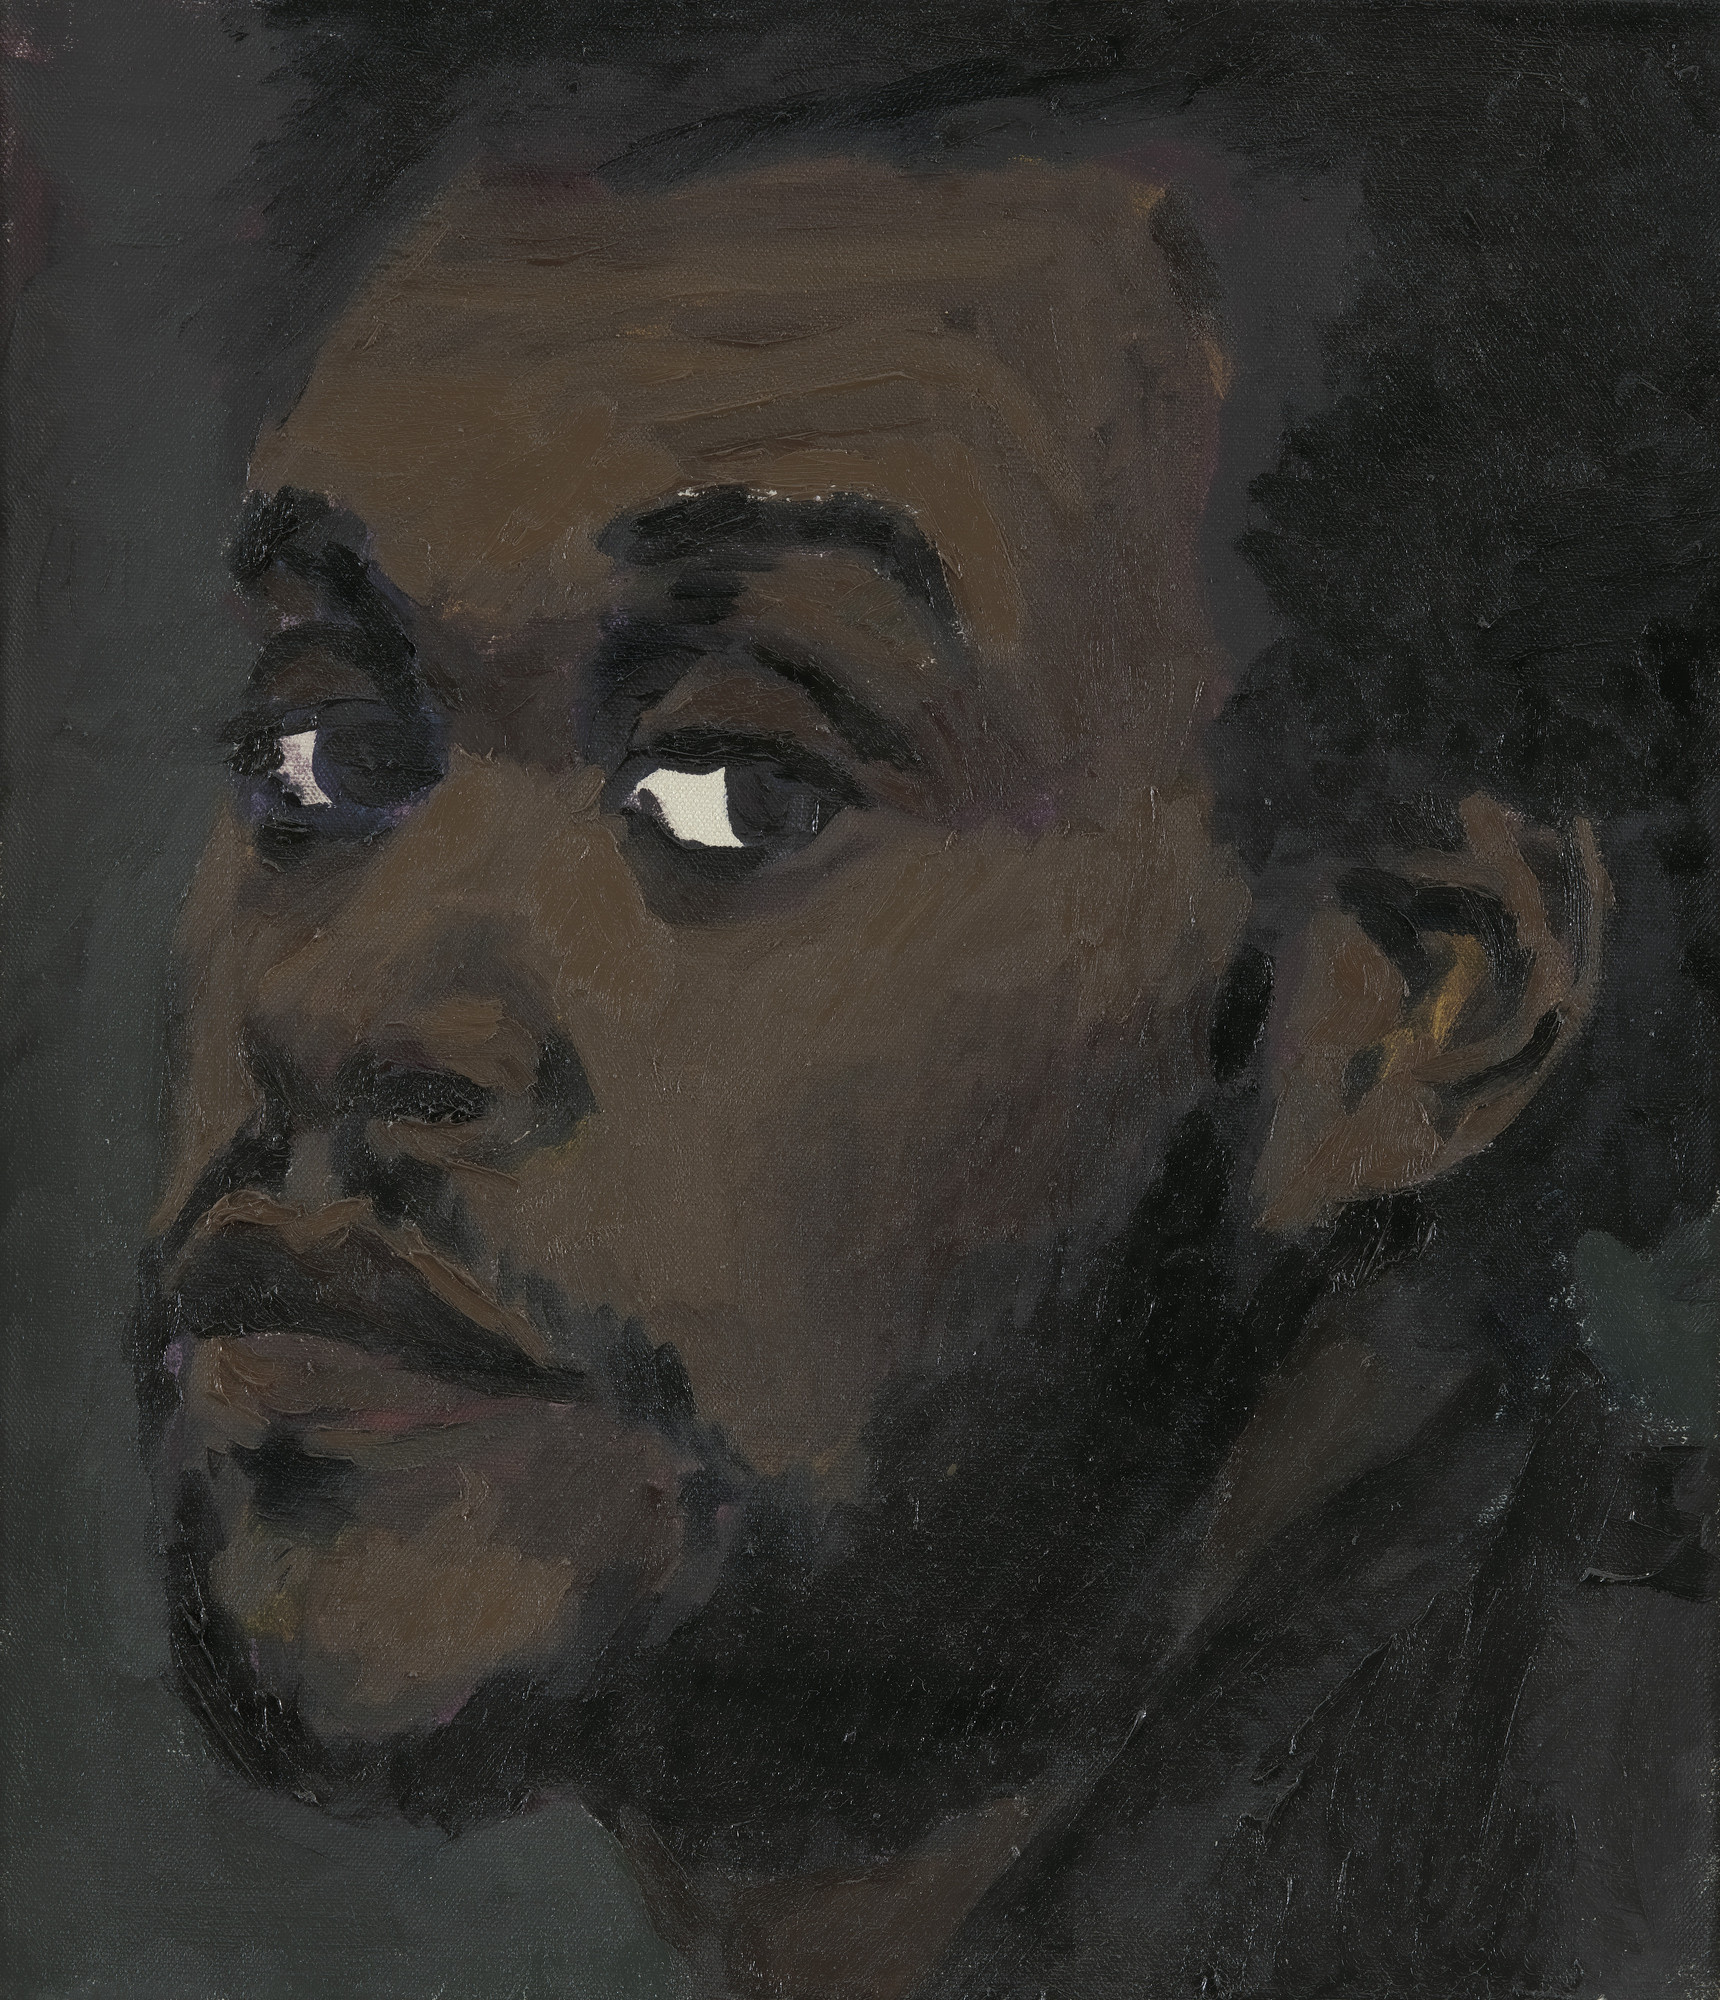 Lynette Yiadom-Boakye. To the Last. 2013